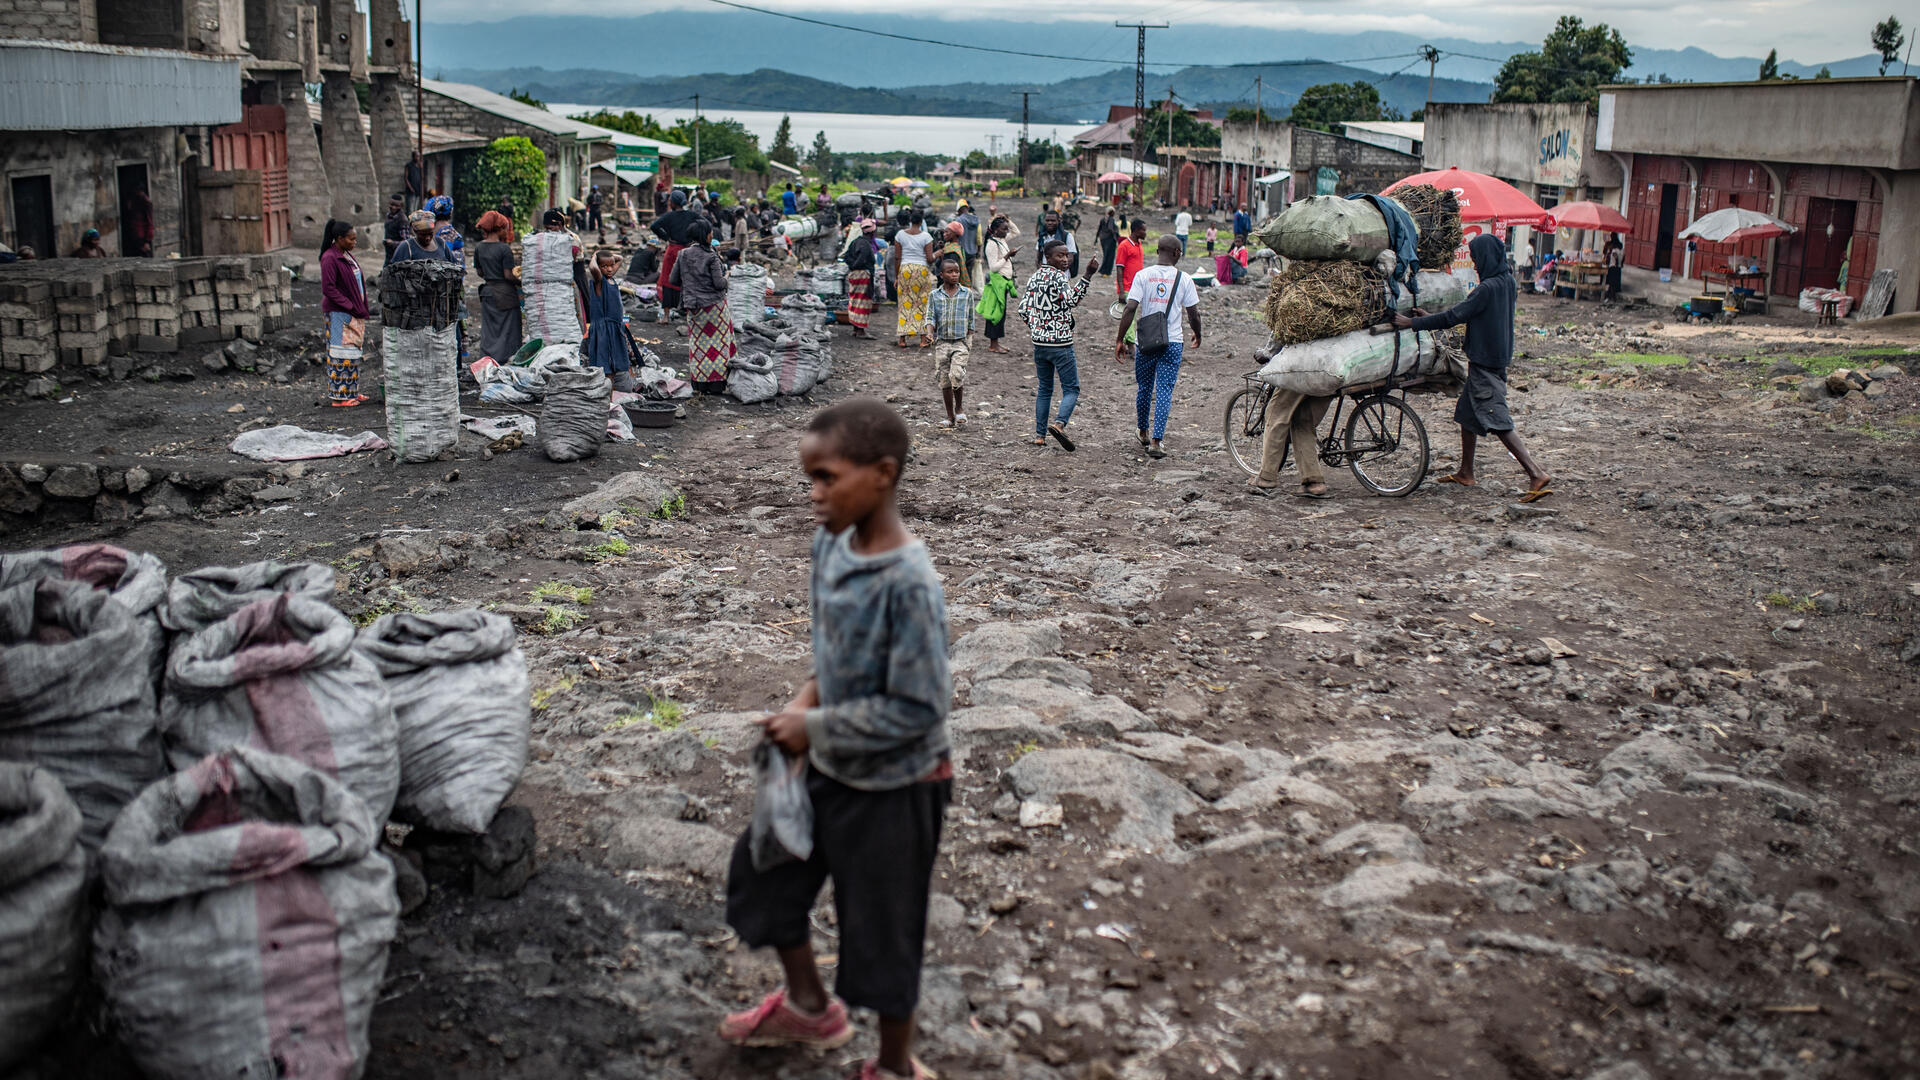 A young boy and other people on the street in Goma, DRC on a cloudy day